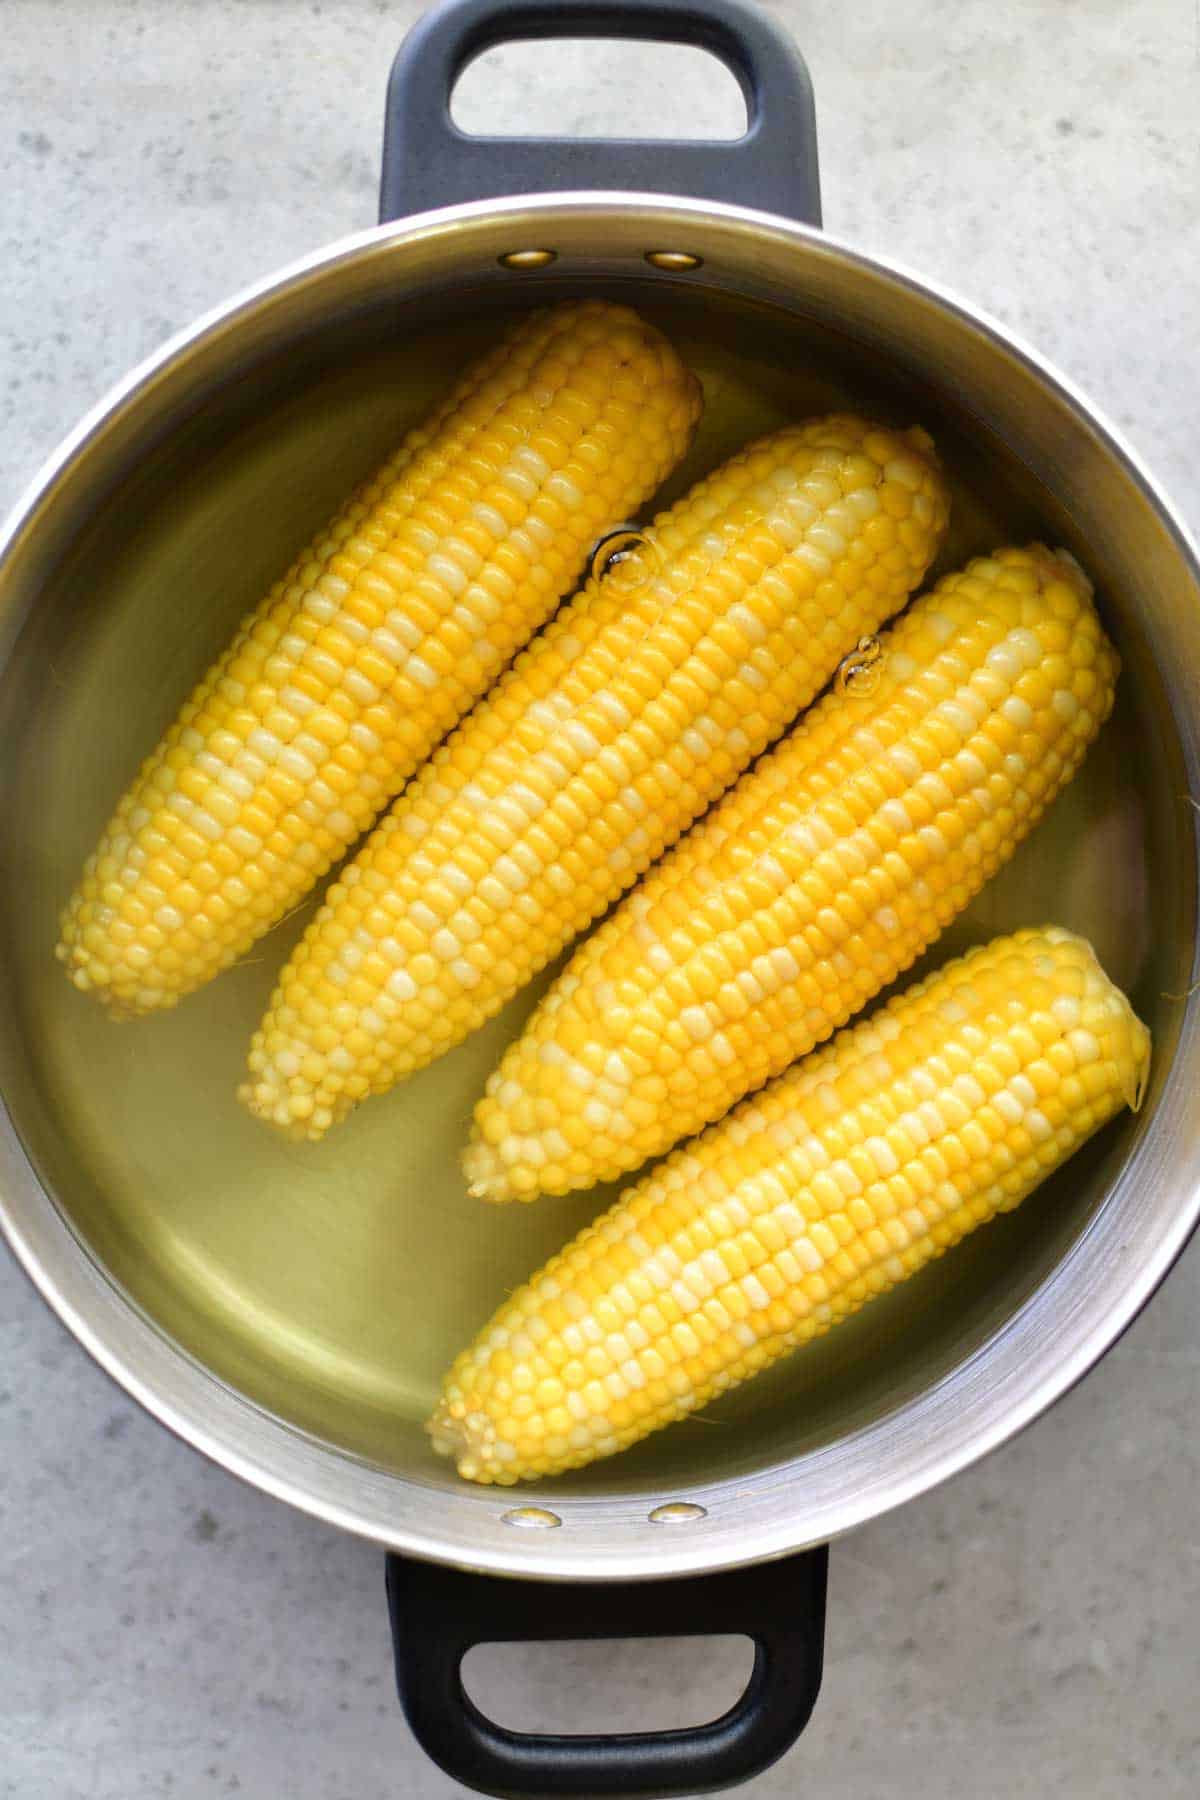 How long do you have to cook fresh corn on the cob